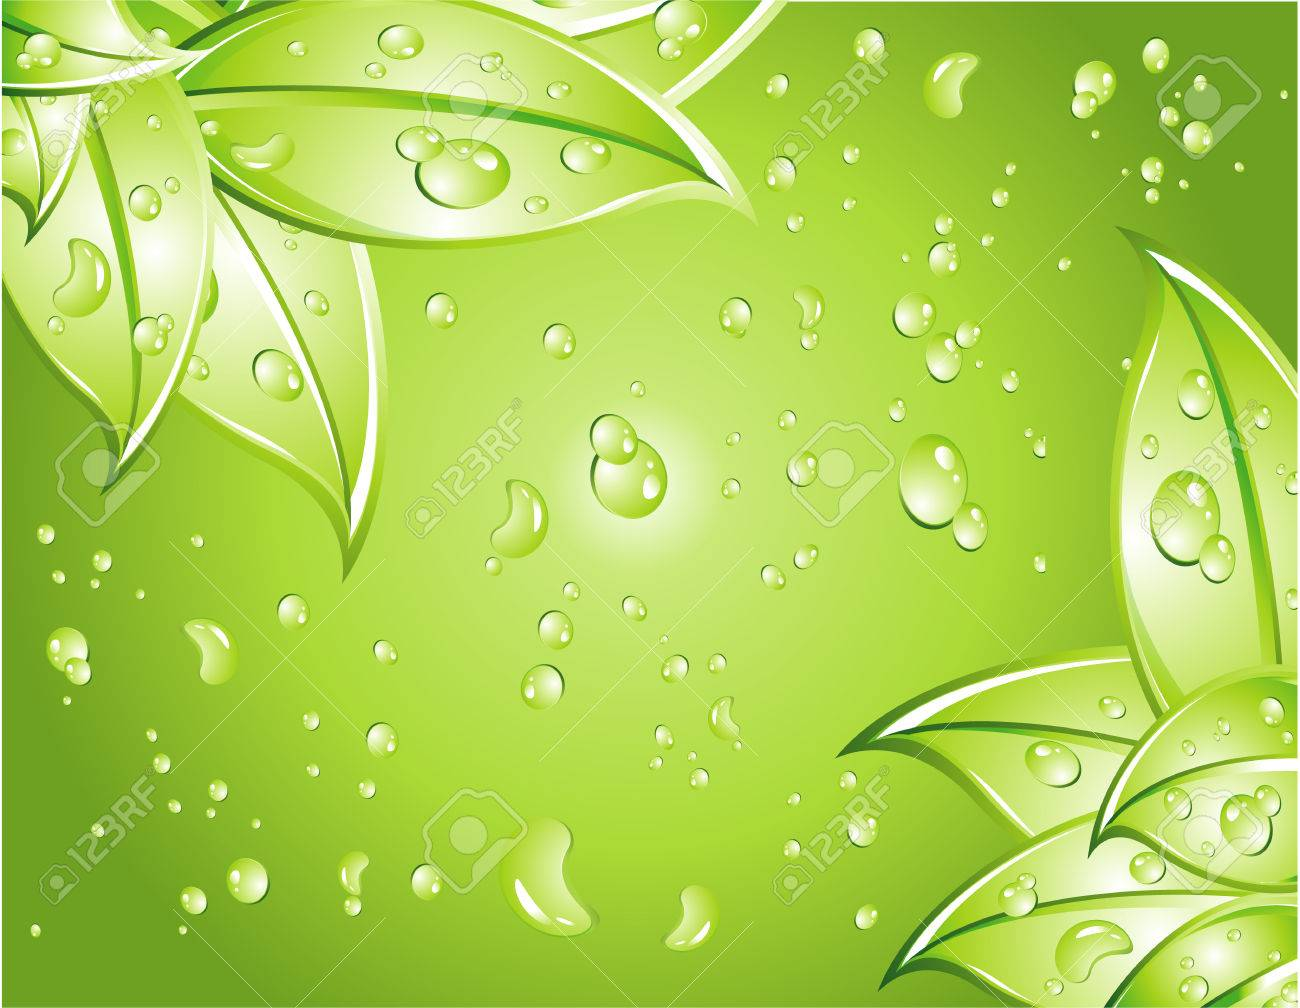 Leaves Background with water drops background Stock Vector - 4896982